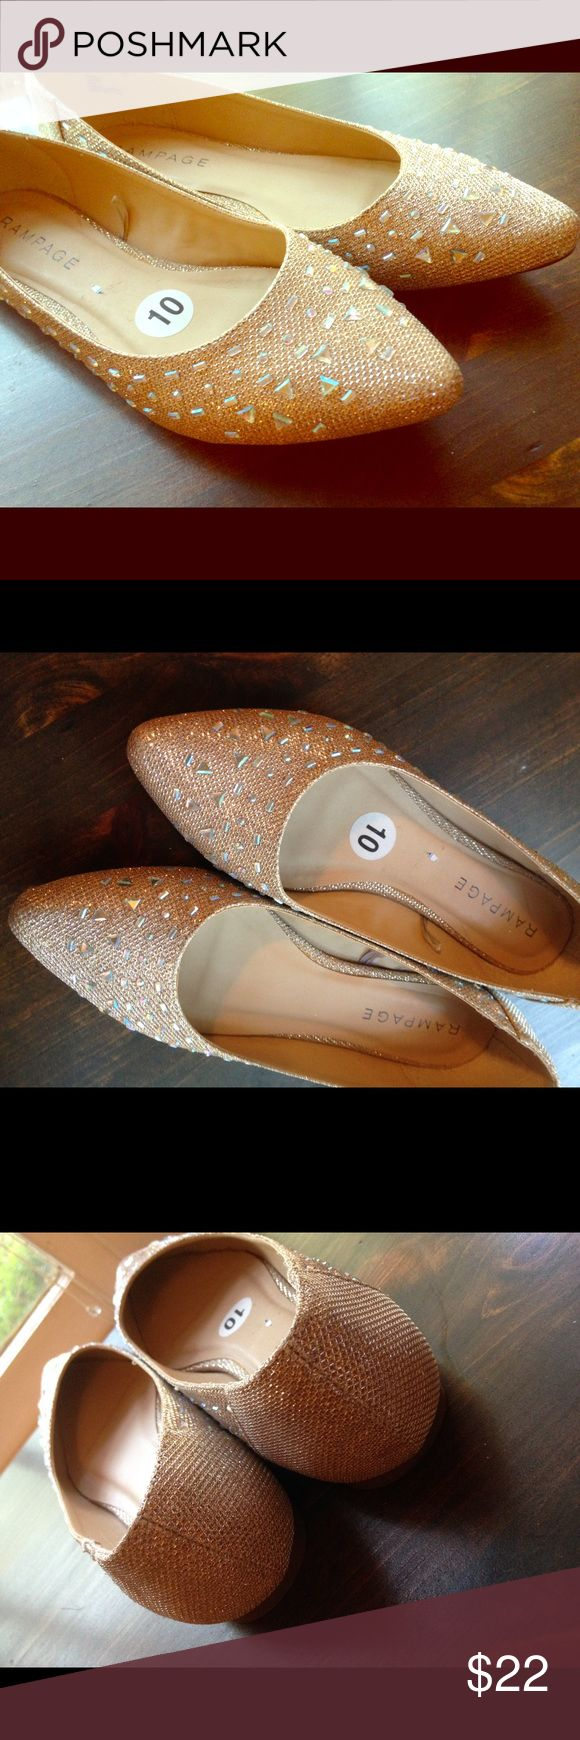 Champagne colored Rampage sparkly flats Like new, worn 1x around my apartment for a few hours. Sparkly Rampage brand flats in a glittering champagne color. Great neutral color but the sparkly factor dresses it up a touch. Wear with your favorite jeans or a cute dress. Rampage Shoes Flats & Loafers